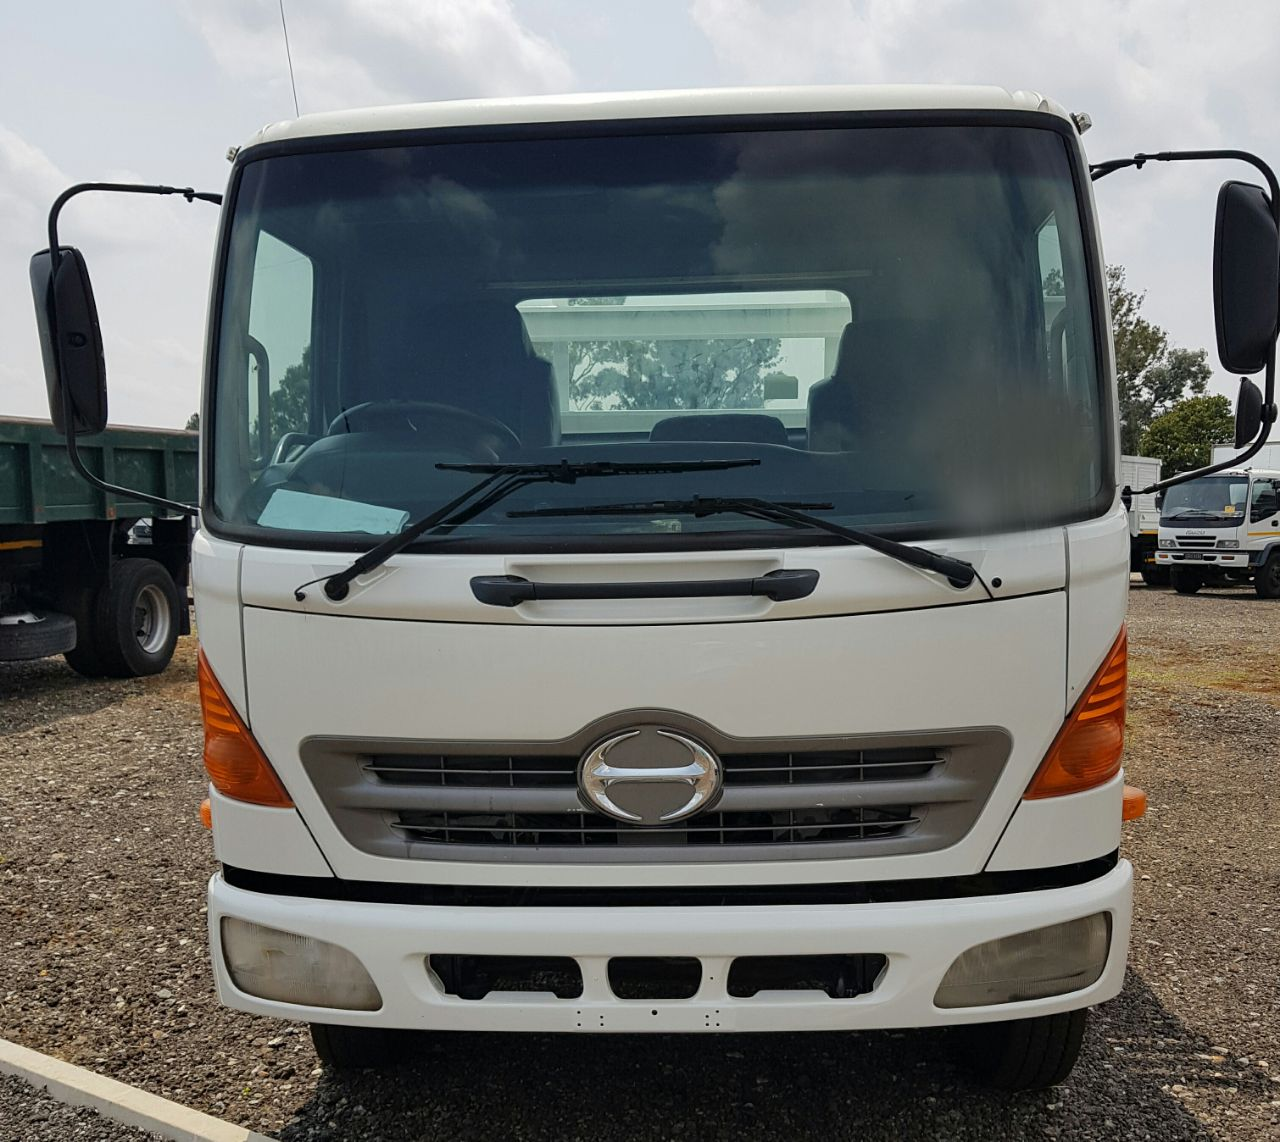 2009 Hino 500, 10-176 Dropside truck for sale